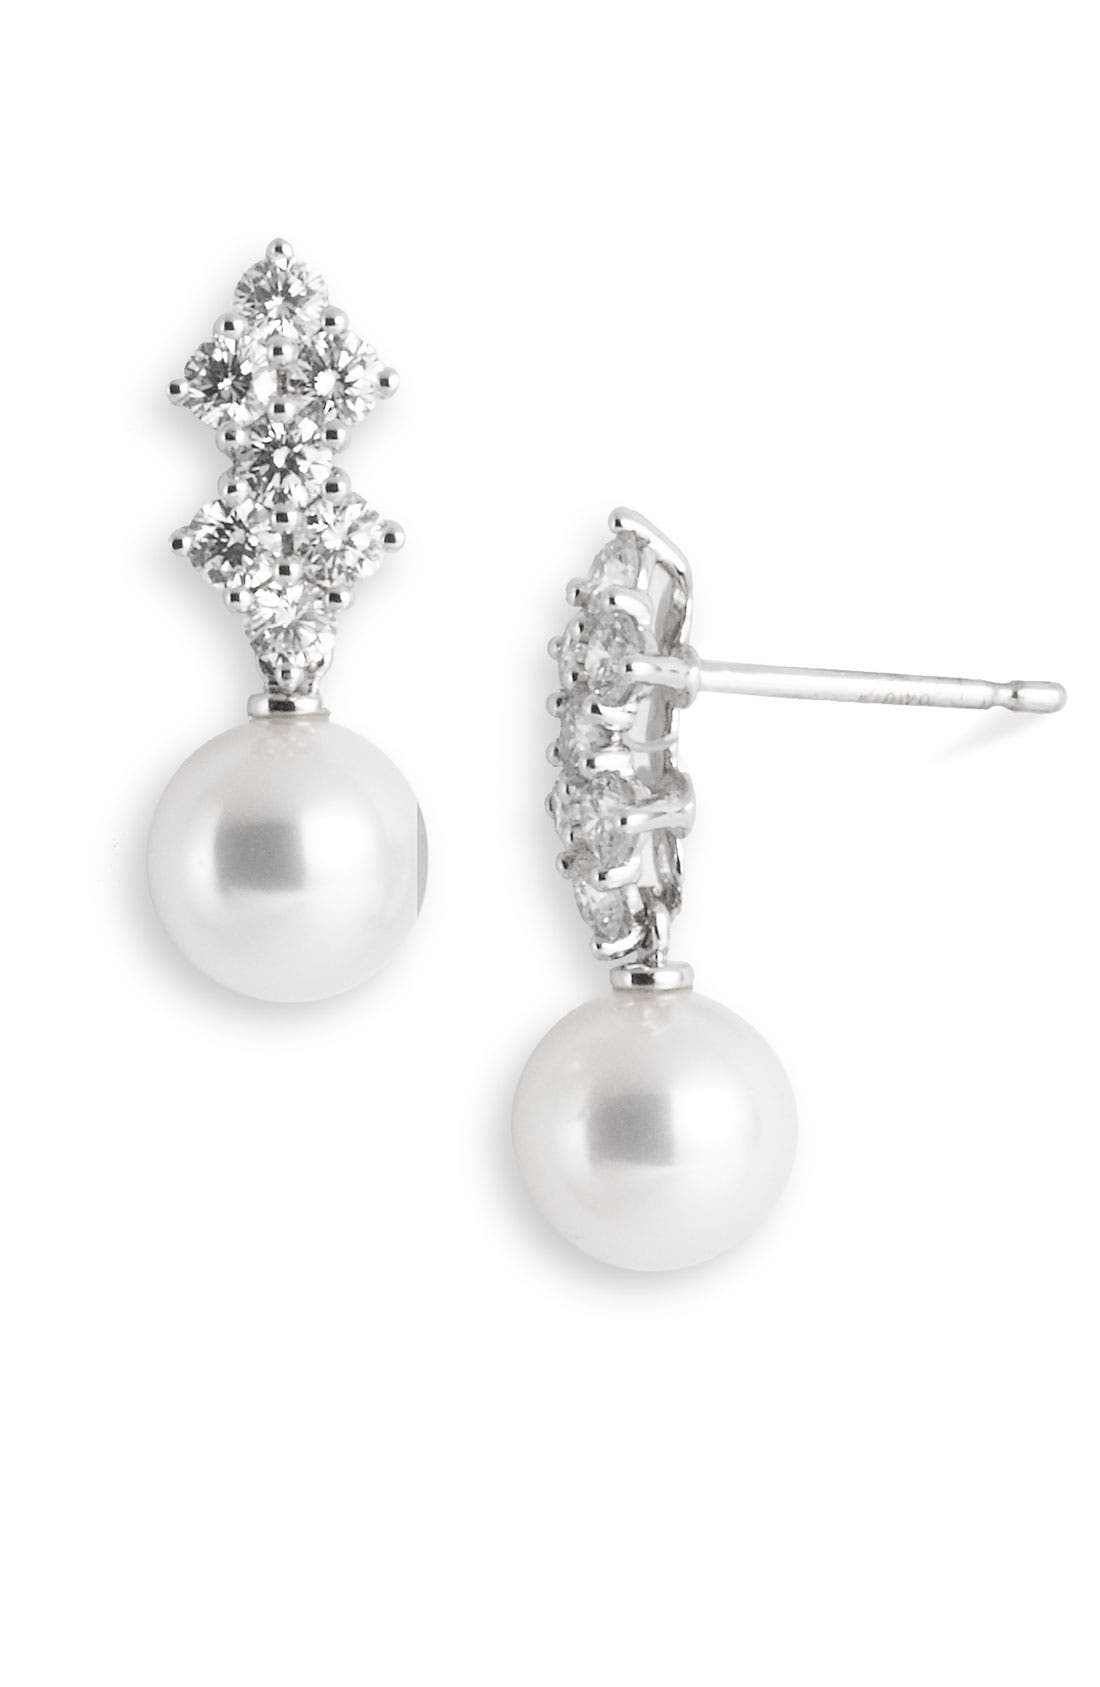 Main Image - Mikimoto 'Classic Elegance' Akoya Cultured Pearl & Diamond Earrings